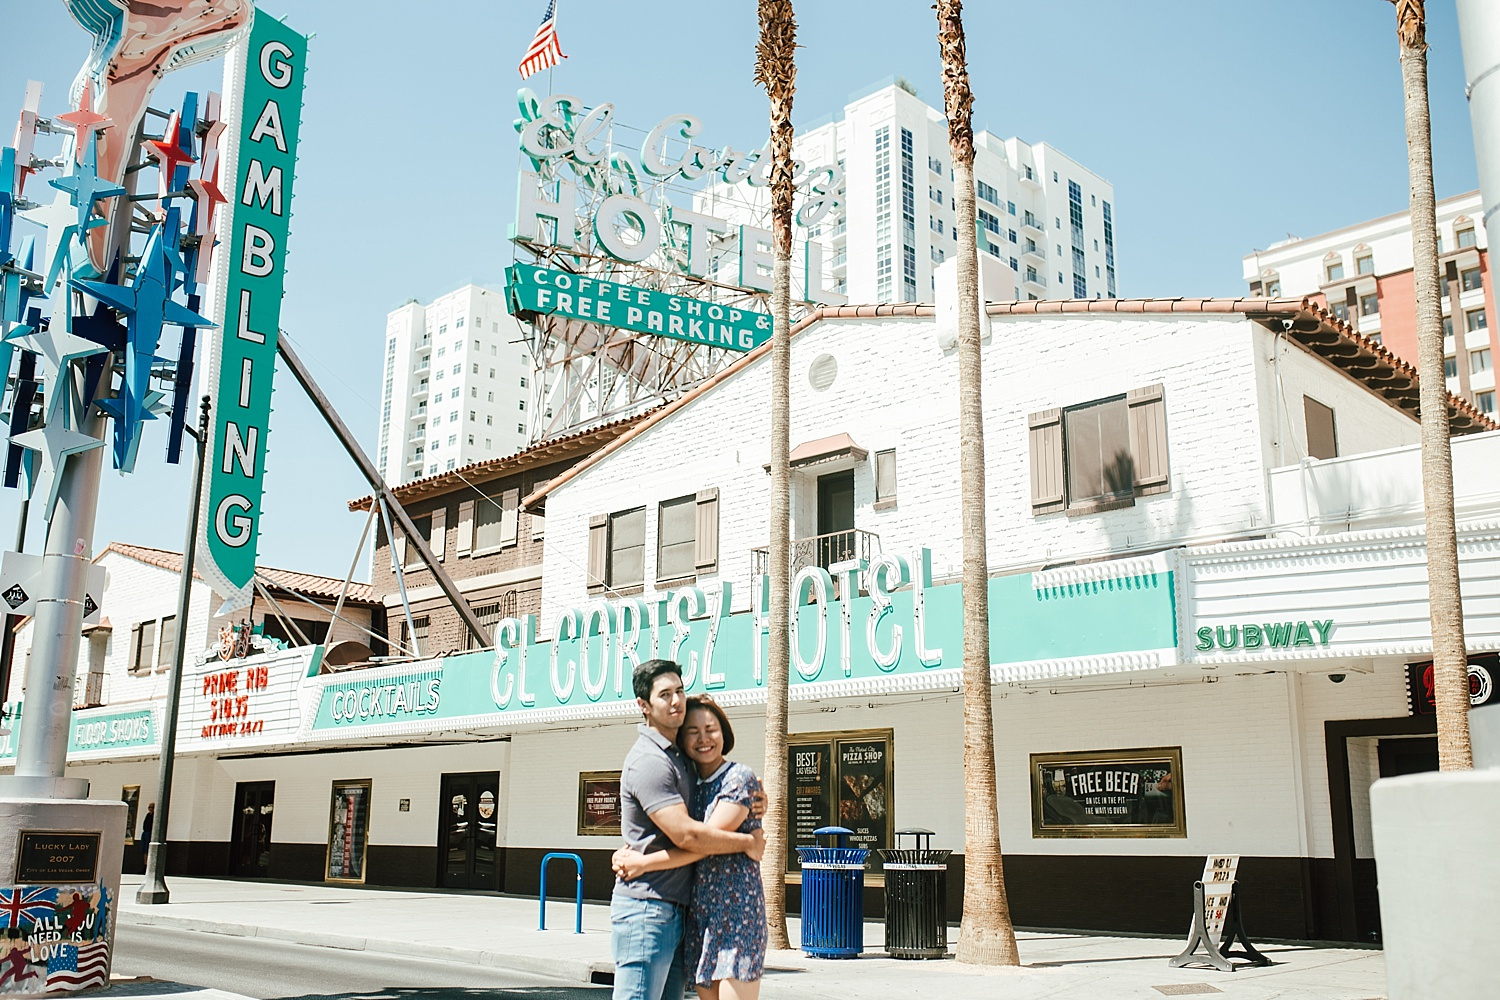 Las Vegas Couples Session, Las Vegas Couples Photo Ideas, Best Las Vegas Photo Locations, Best Las Vegas Photographer, Las Vegas Wedding Photographer, Las Vegas Wedding Photographers, Las Vegas Wedding Photos,  Las Vegas Wedding Photo Ideas, Las Vegas Elopement, Las Vegas Elopement Photographer, Las Vegas Elopement Ideas, Ashley Izquierdo, Las Vegas, Las Vegas Photo Ideas, Top Las Vegas Photo Spots, Photo Spots outside Las Vegas strip